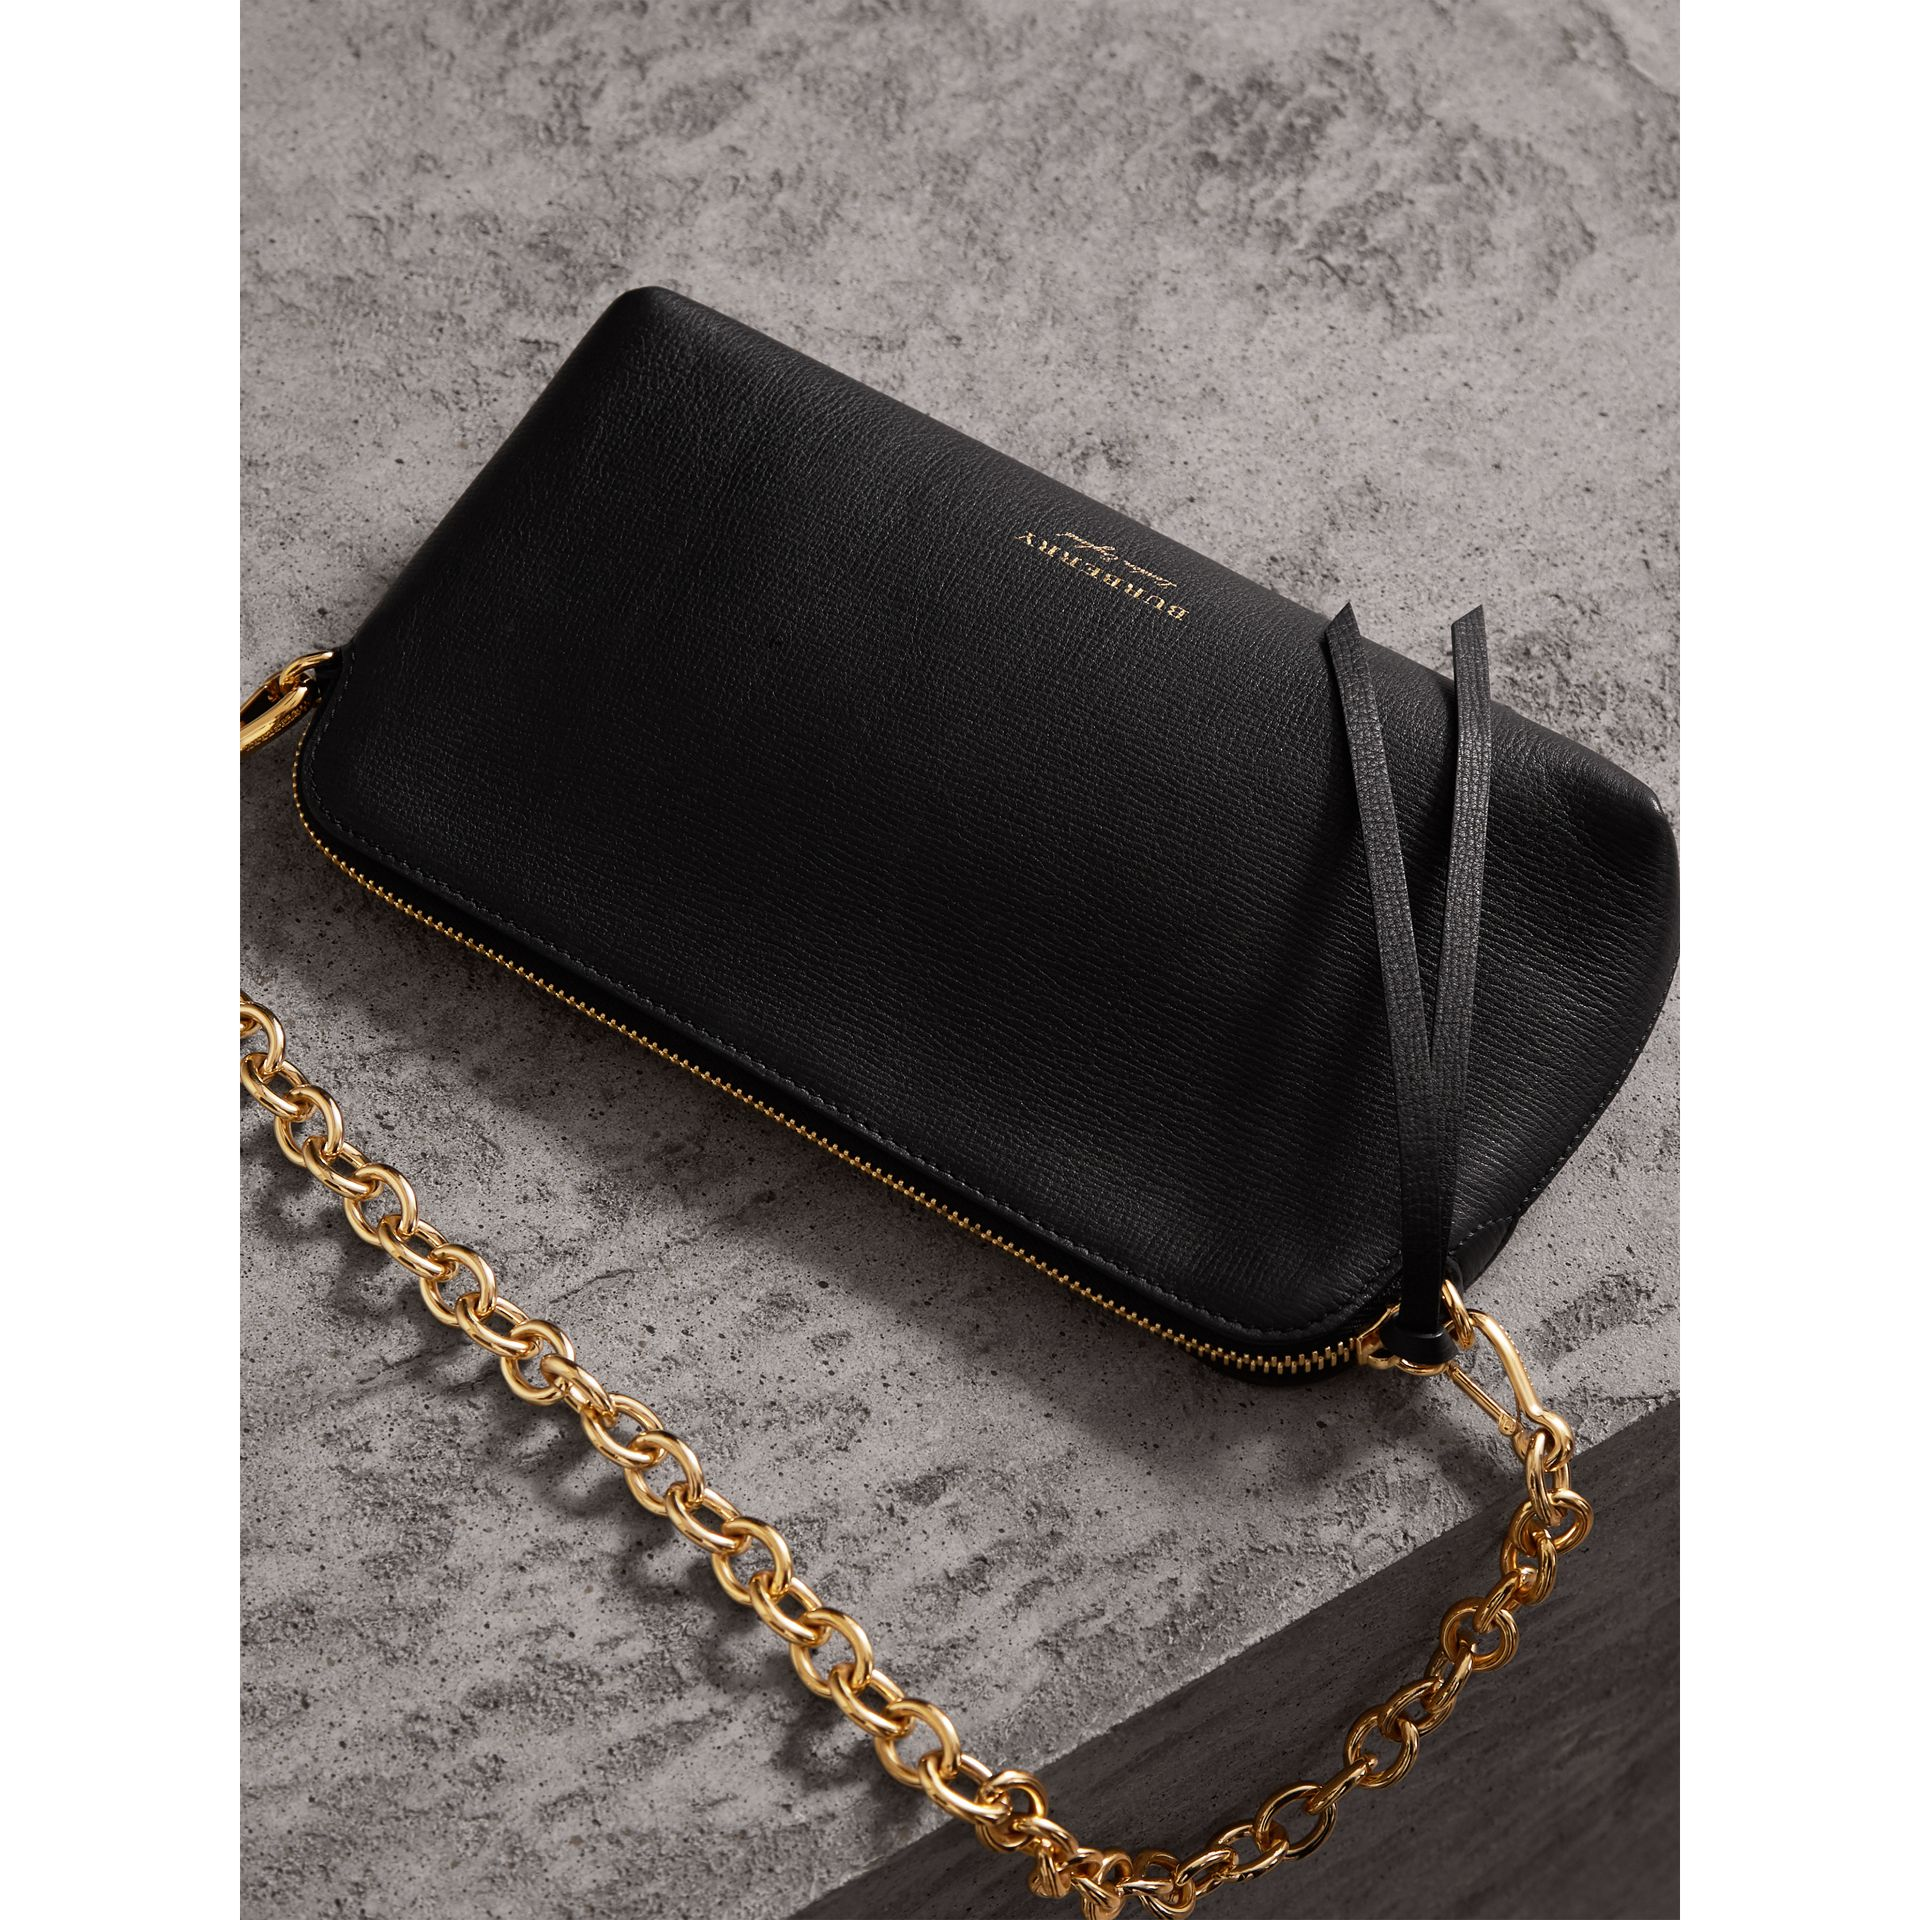 Grainy Leather Clutch Bag in Black - Women | Burberry Canada - gallery image 7